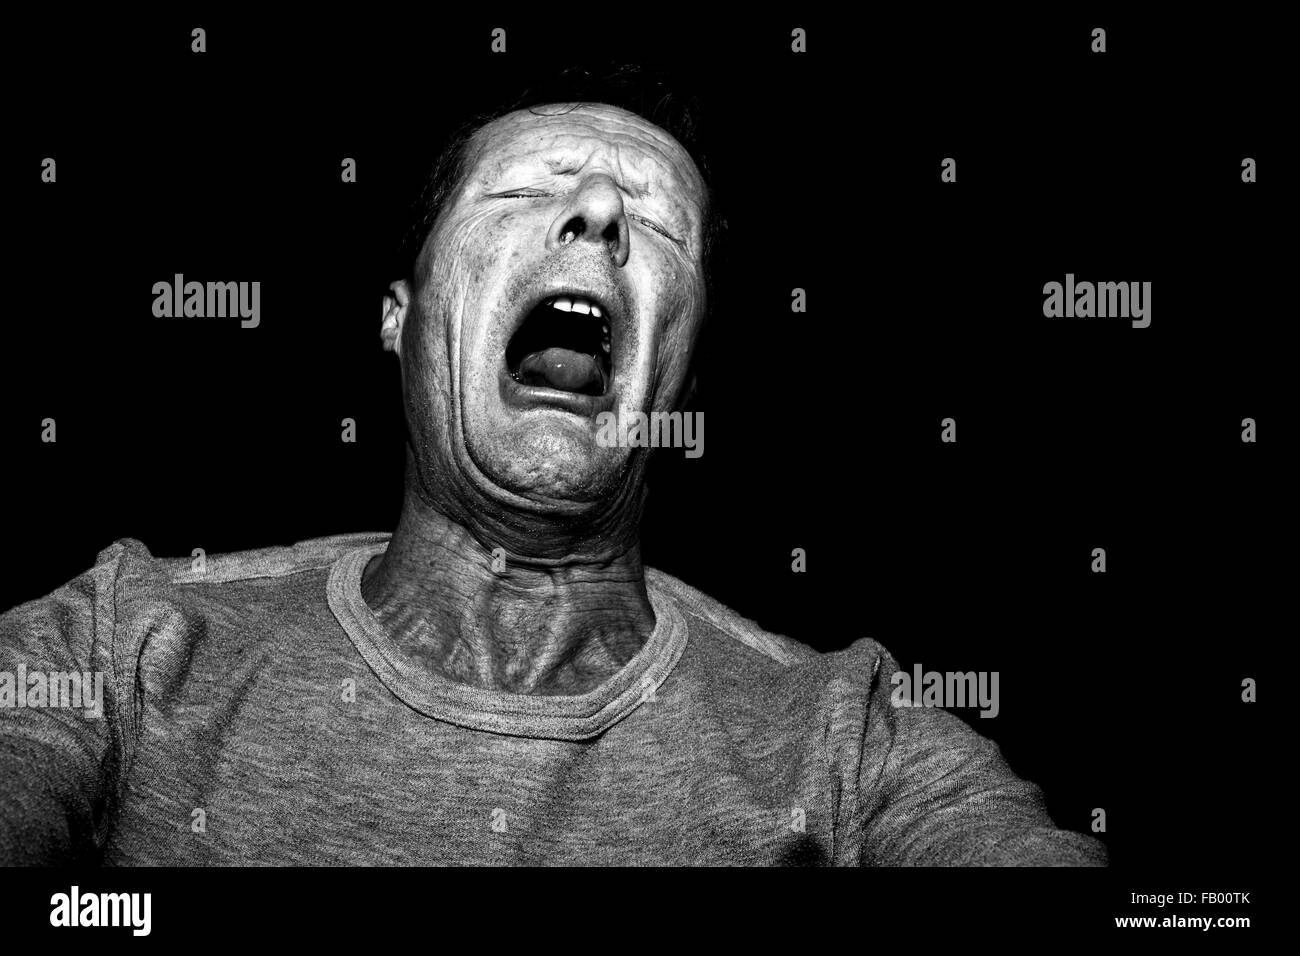 Man having an asthmatic coughing attack. - Stock Image